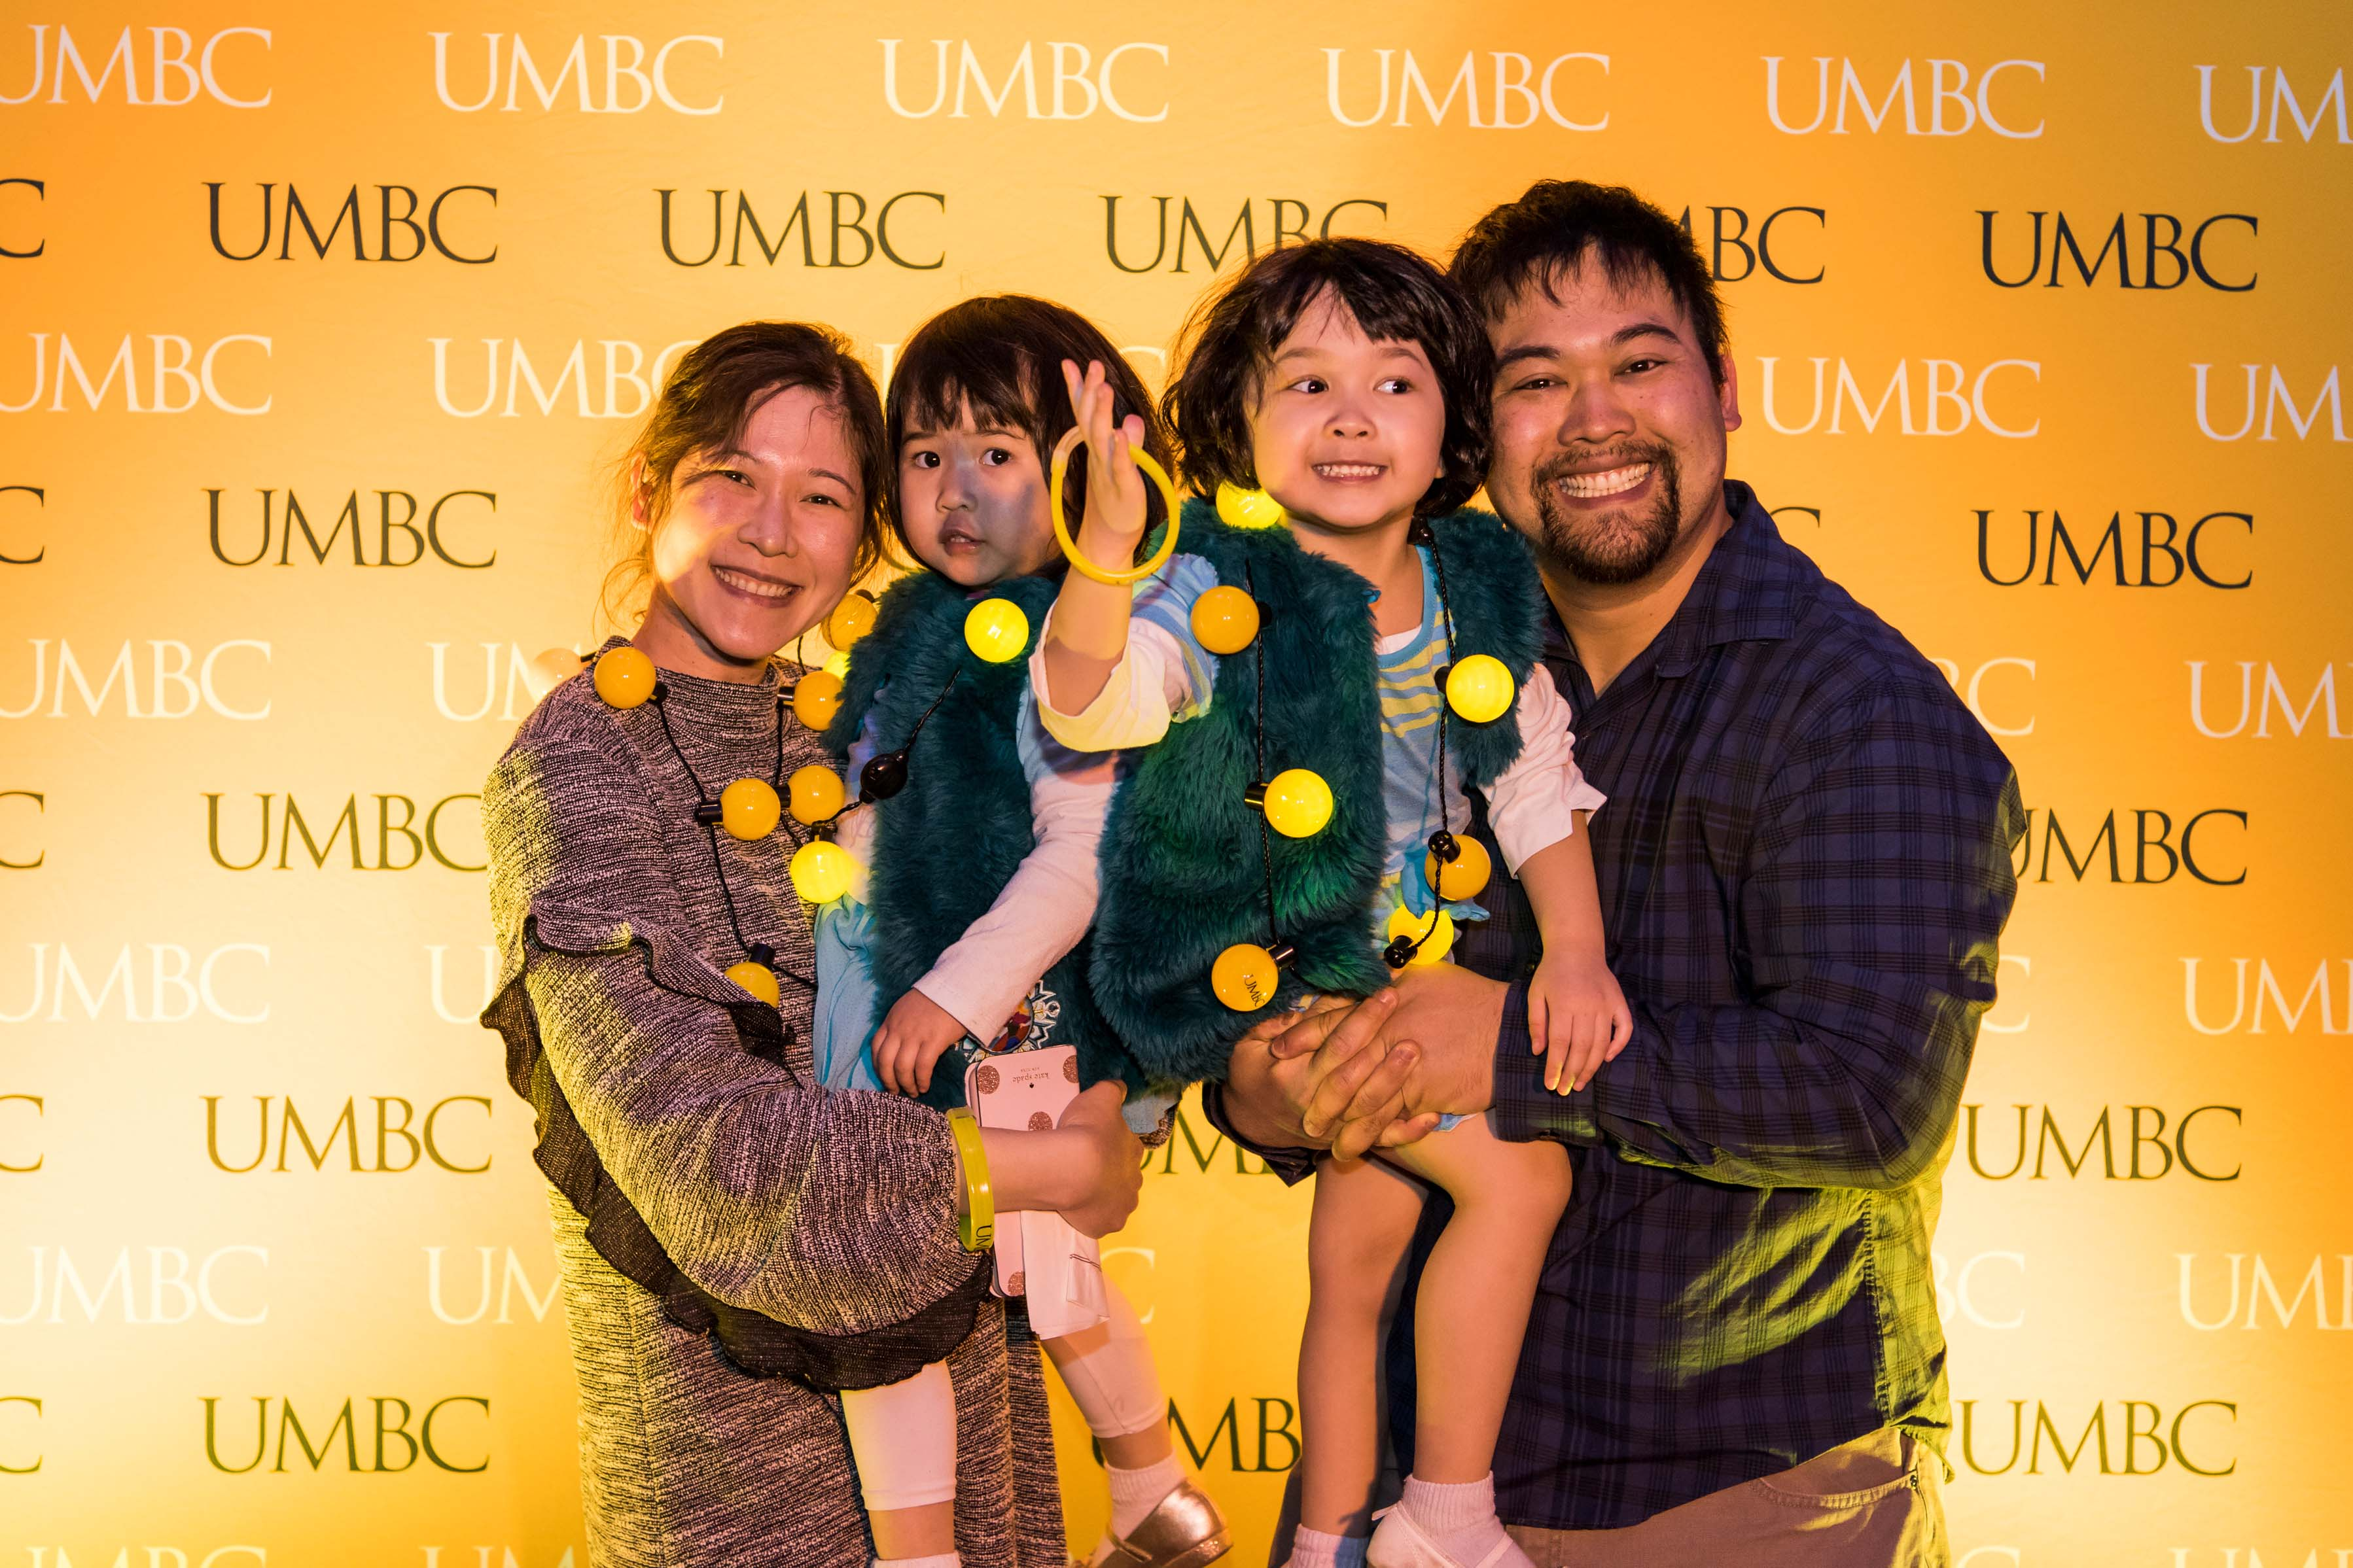 Family pose in front of UMBC wall at Pier 5 reception